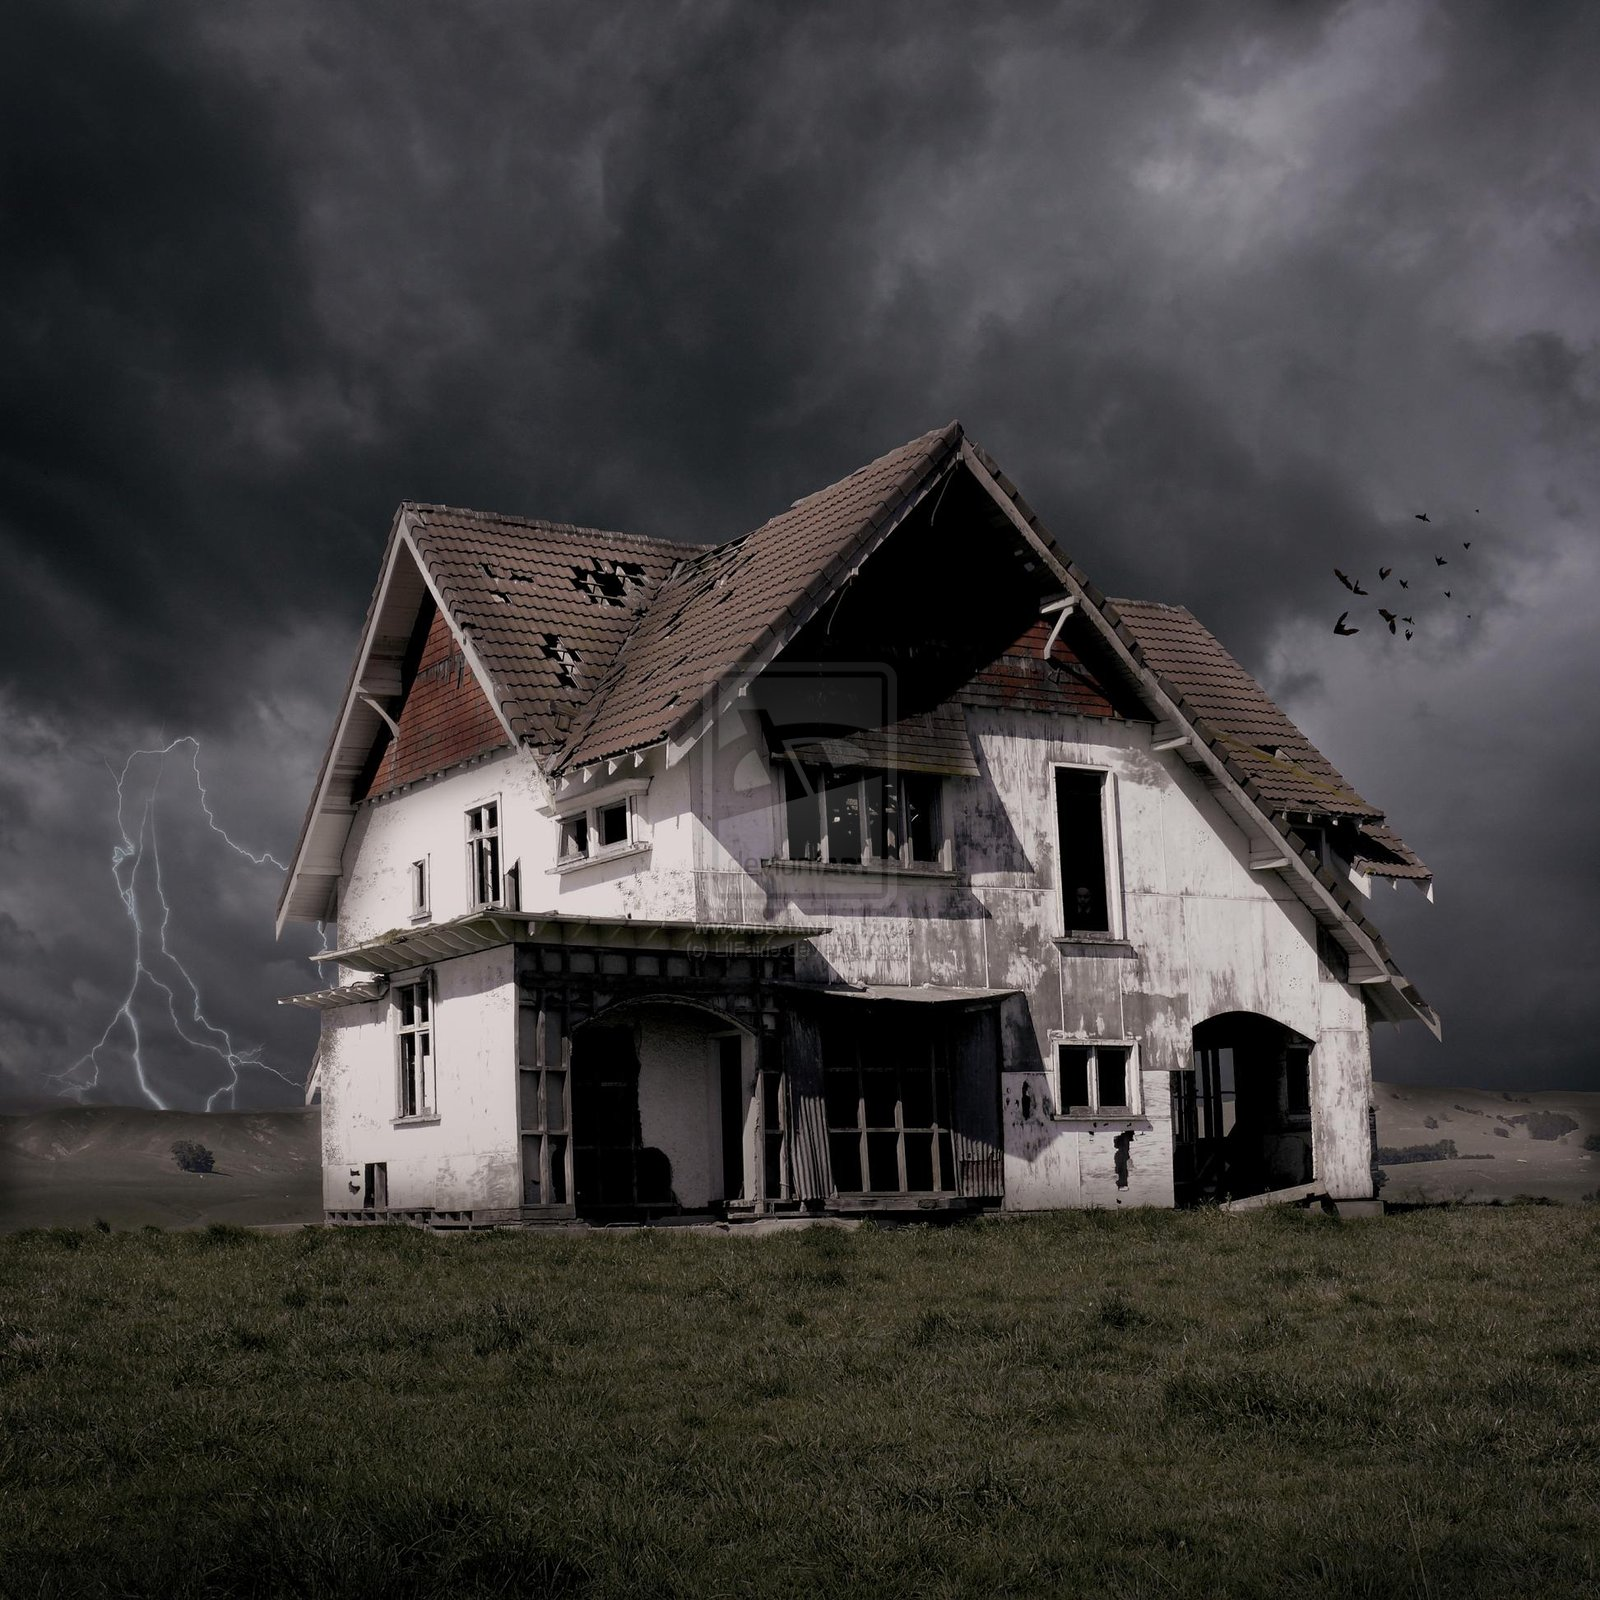 Haunted_house_of_Carterton_by_LilFairie